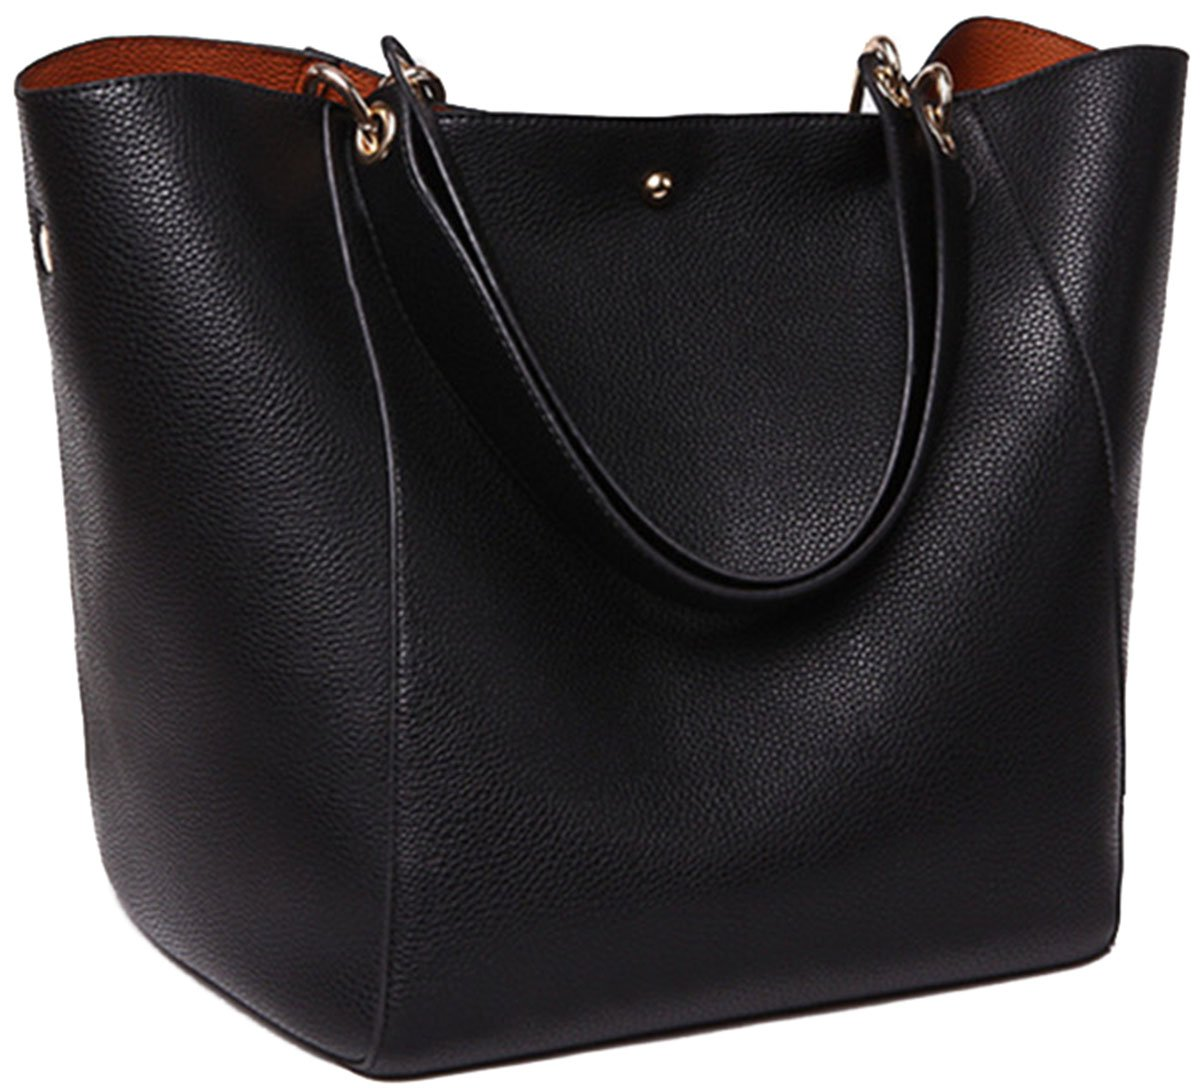 SQLP Work Tote Bags for Women's Leather Purse and handbags ladies Waterproof Shoulder Bag Black